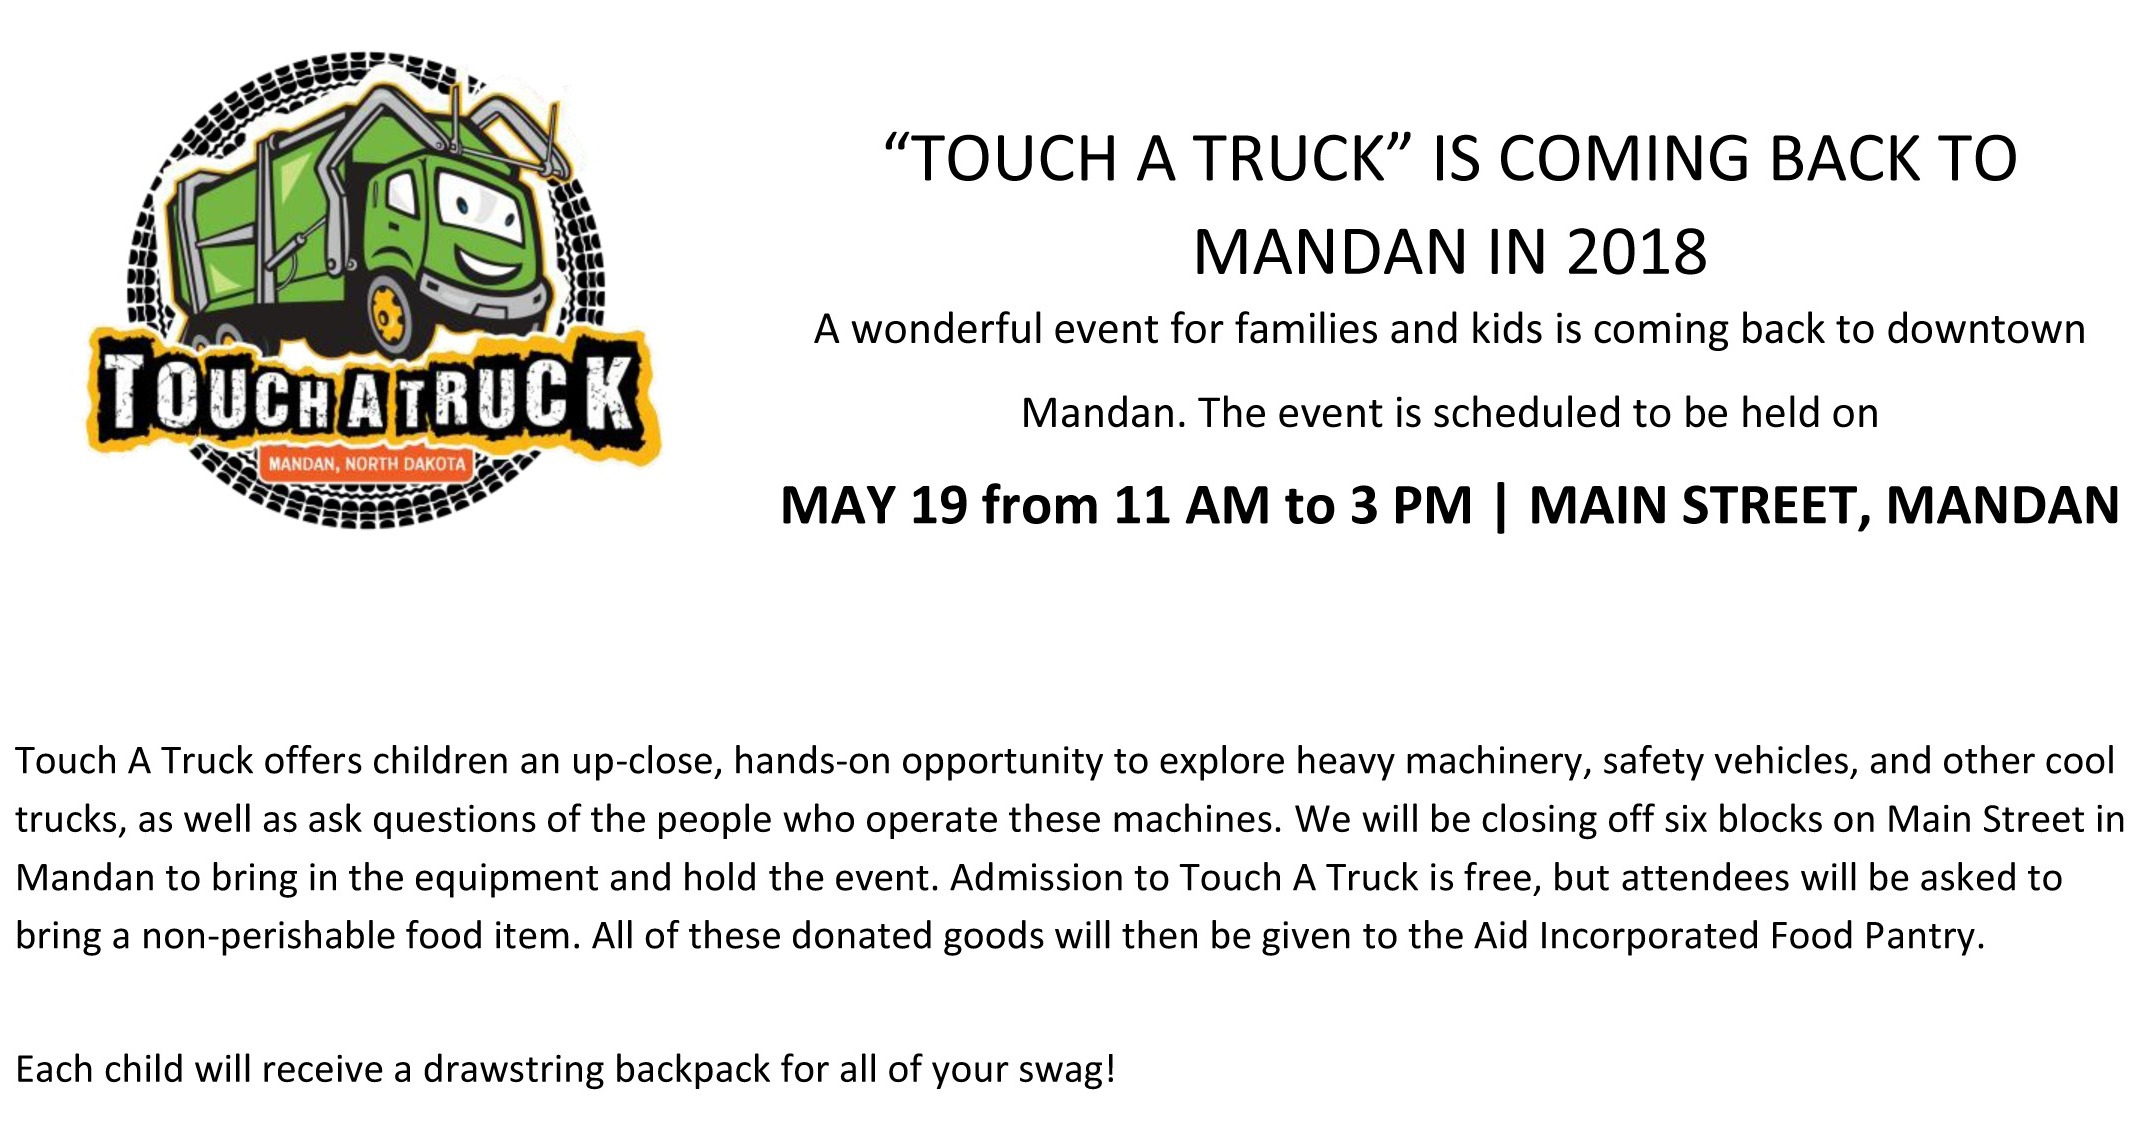 Touch a Truck - May 19th, 2018